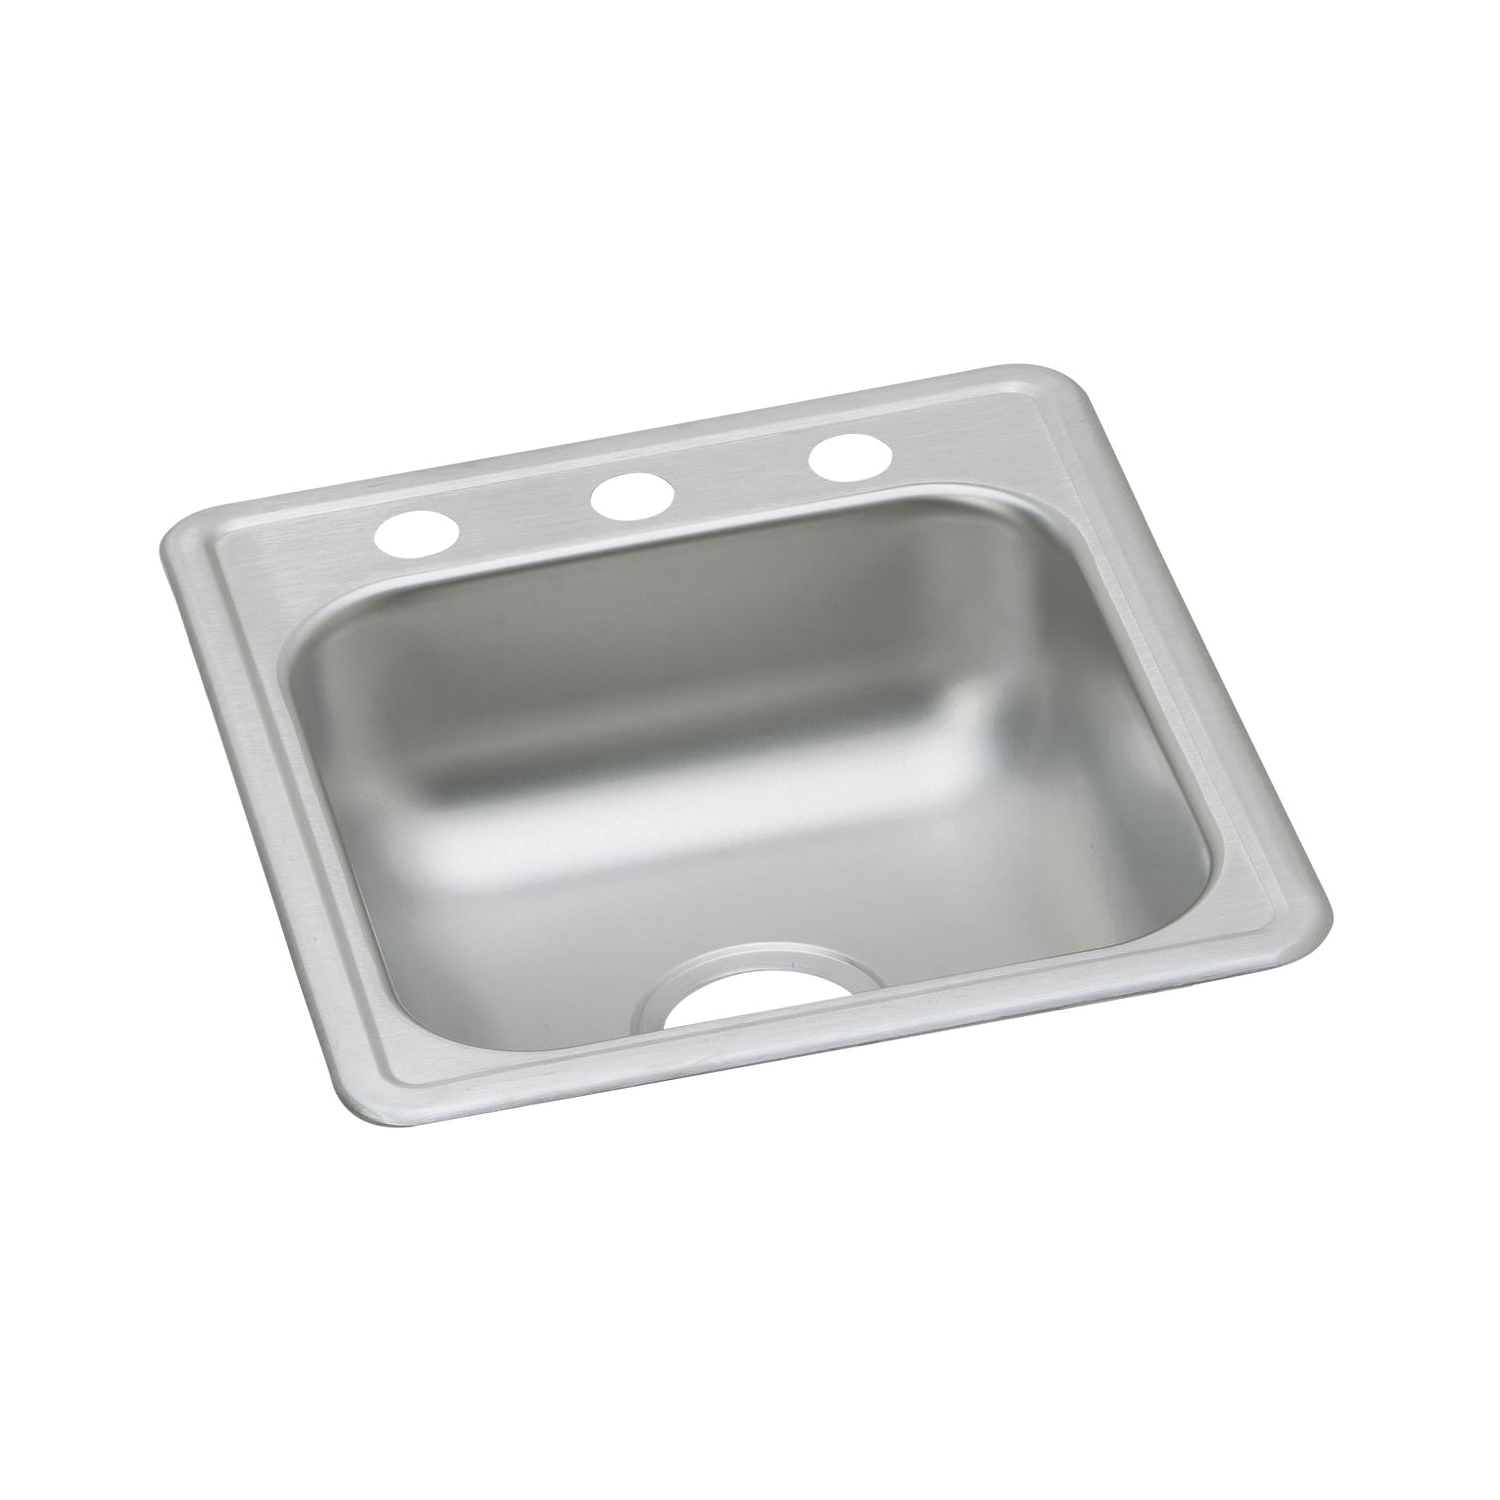 Elkay® D117193 Bar Sink, Rectangular, 14 in L x 14 in W x 6 in D Bowl, 3 Faucet Holes, 19 17 in L x 19 in W x 6-3/16 in D, Top Mount, Stainless Steel, Satin